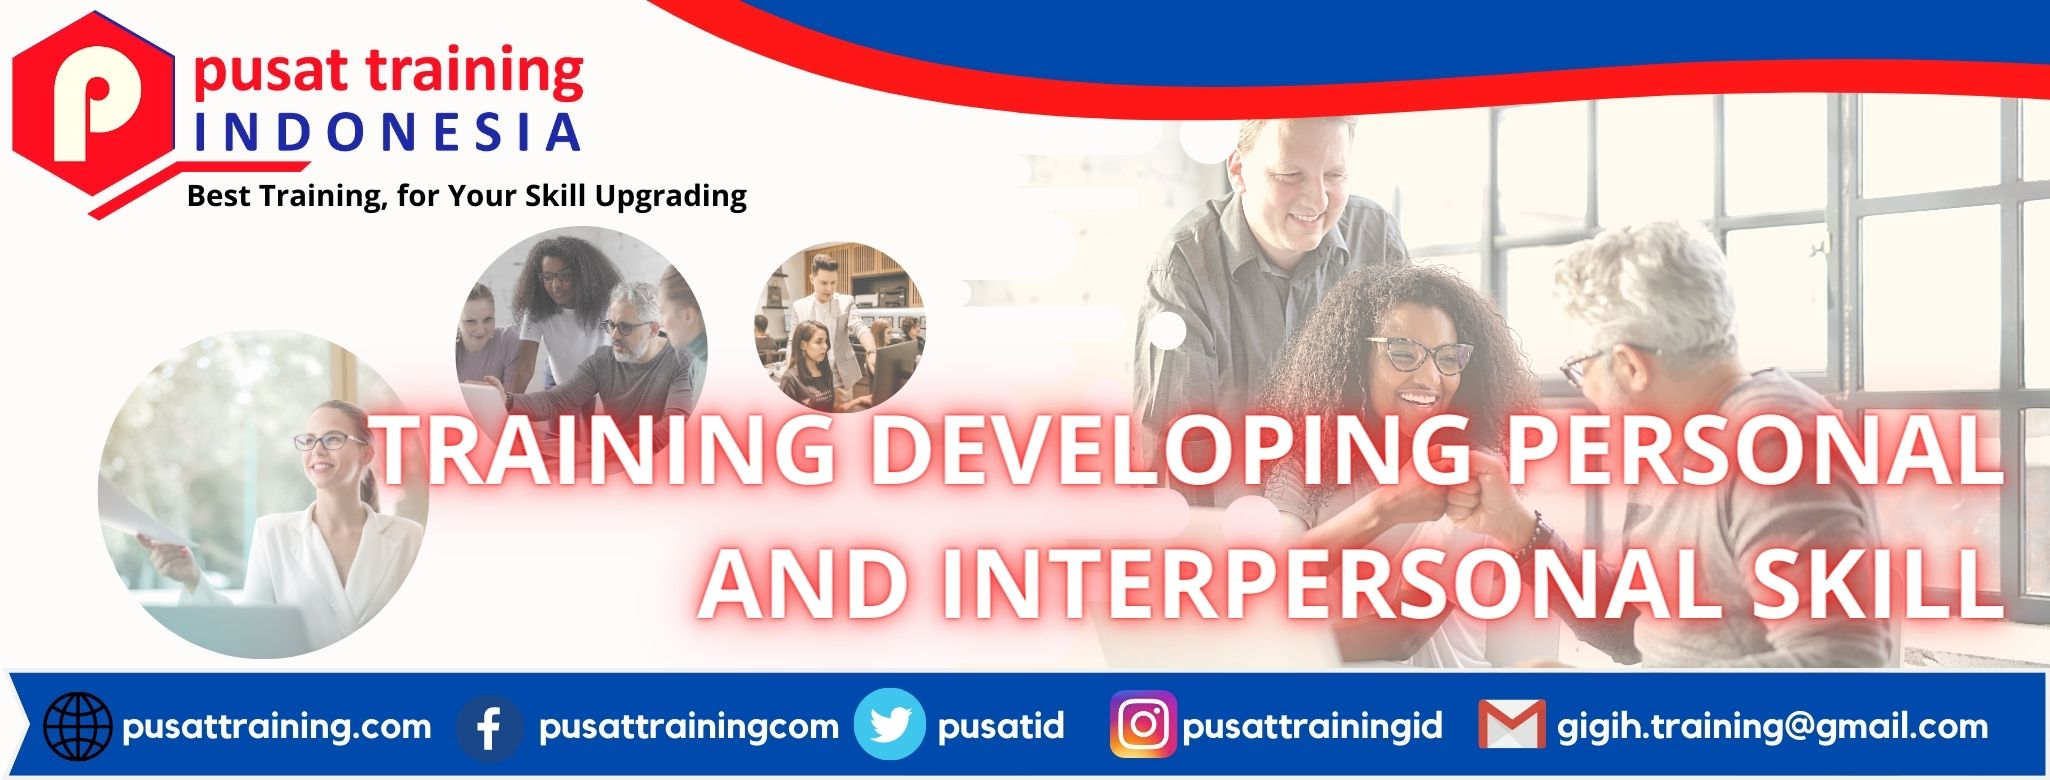 TRAINING DEVELOPING PERSONAL AND INTERPERSONAL SKILL